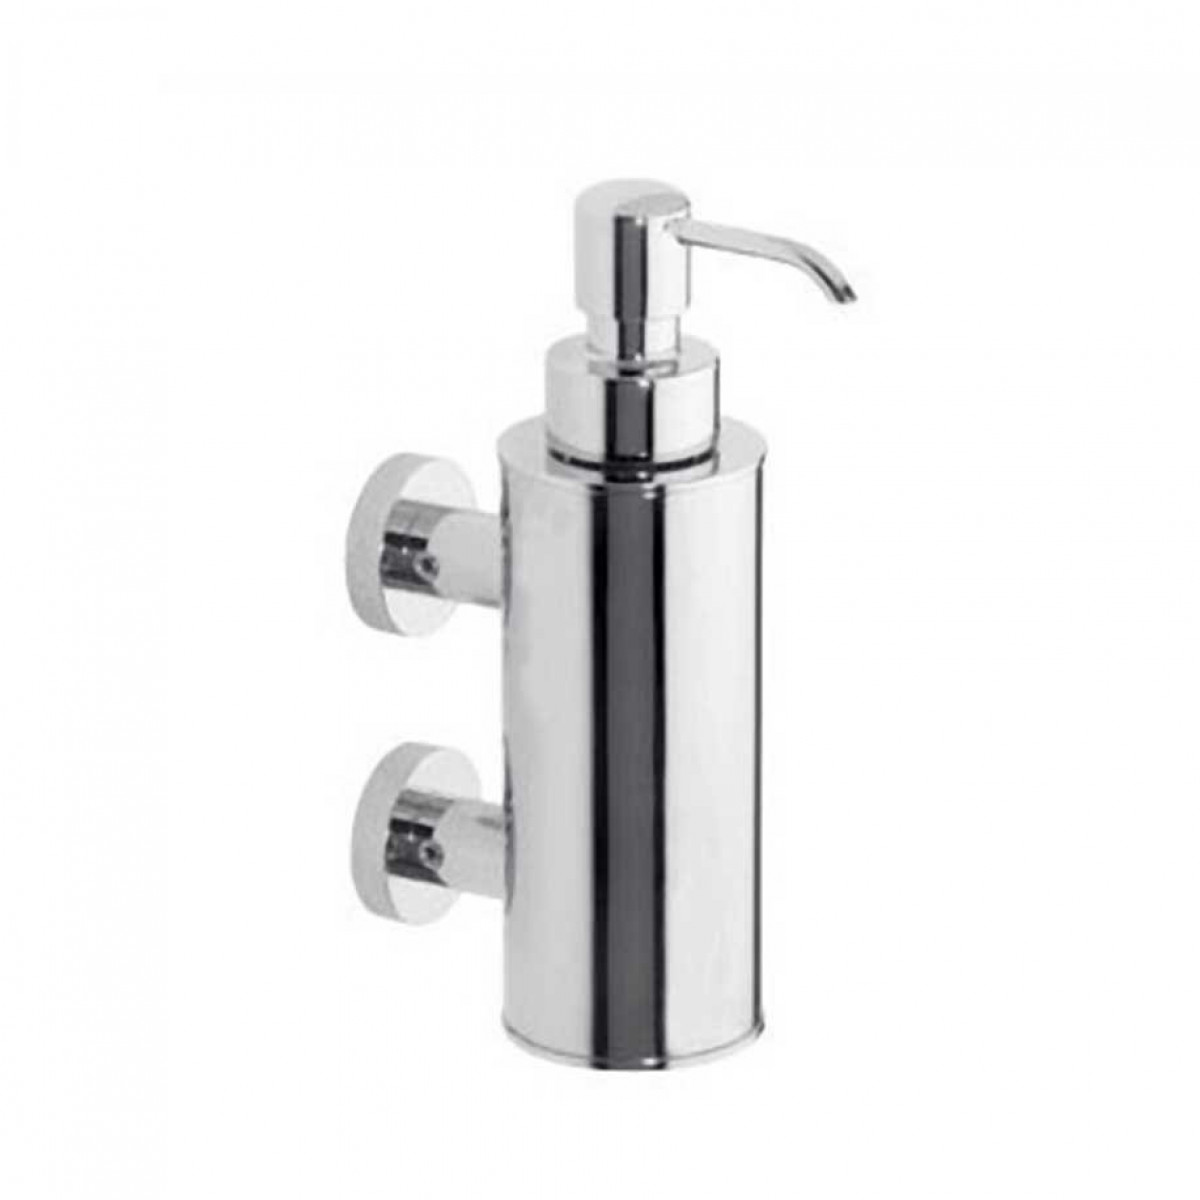 Concealed soap dispenser dyson airblade tap price